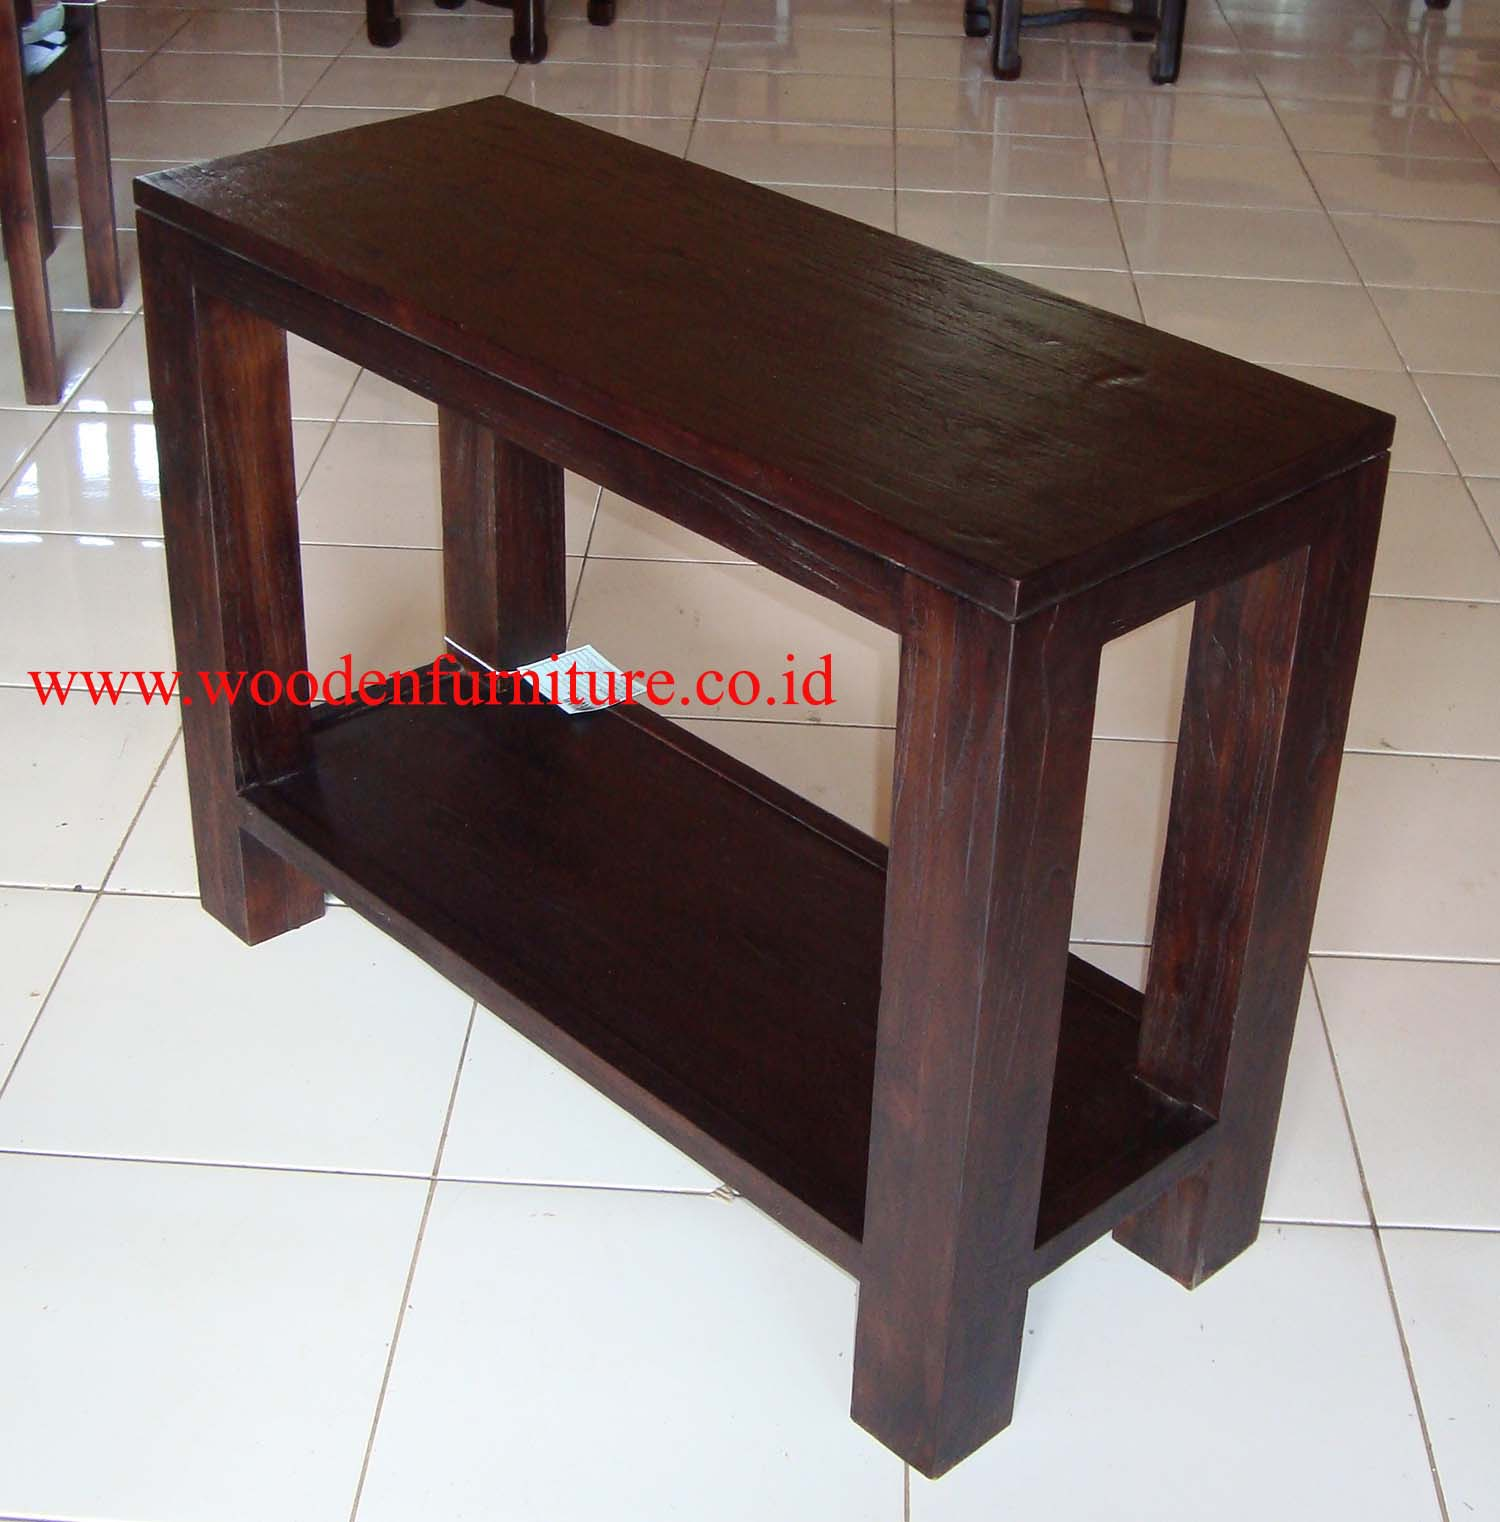 Teak console table teak console table suppliers and manufacturers teak console table teak console table suppliers and manufacturers at alibaba geotapseo Image collections